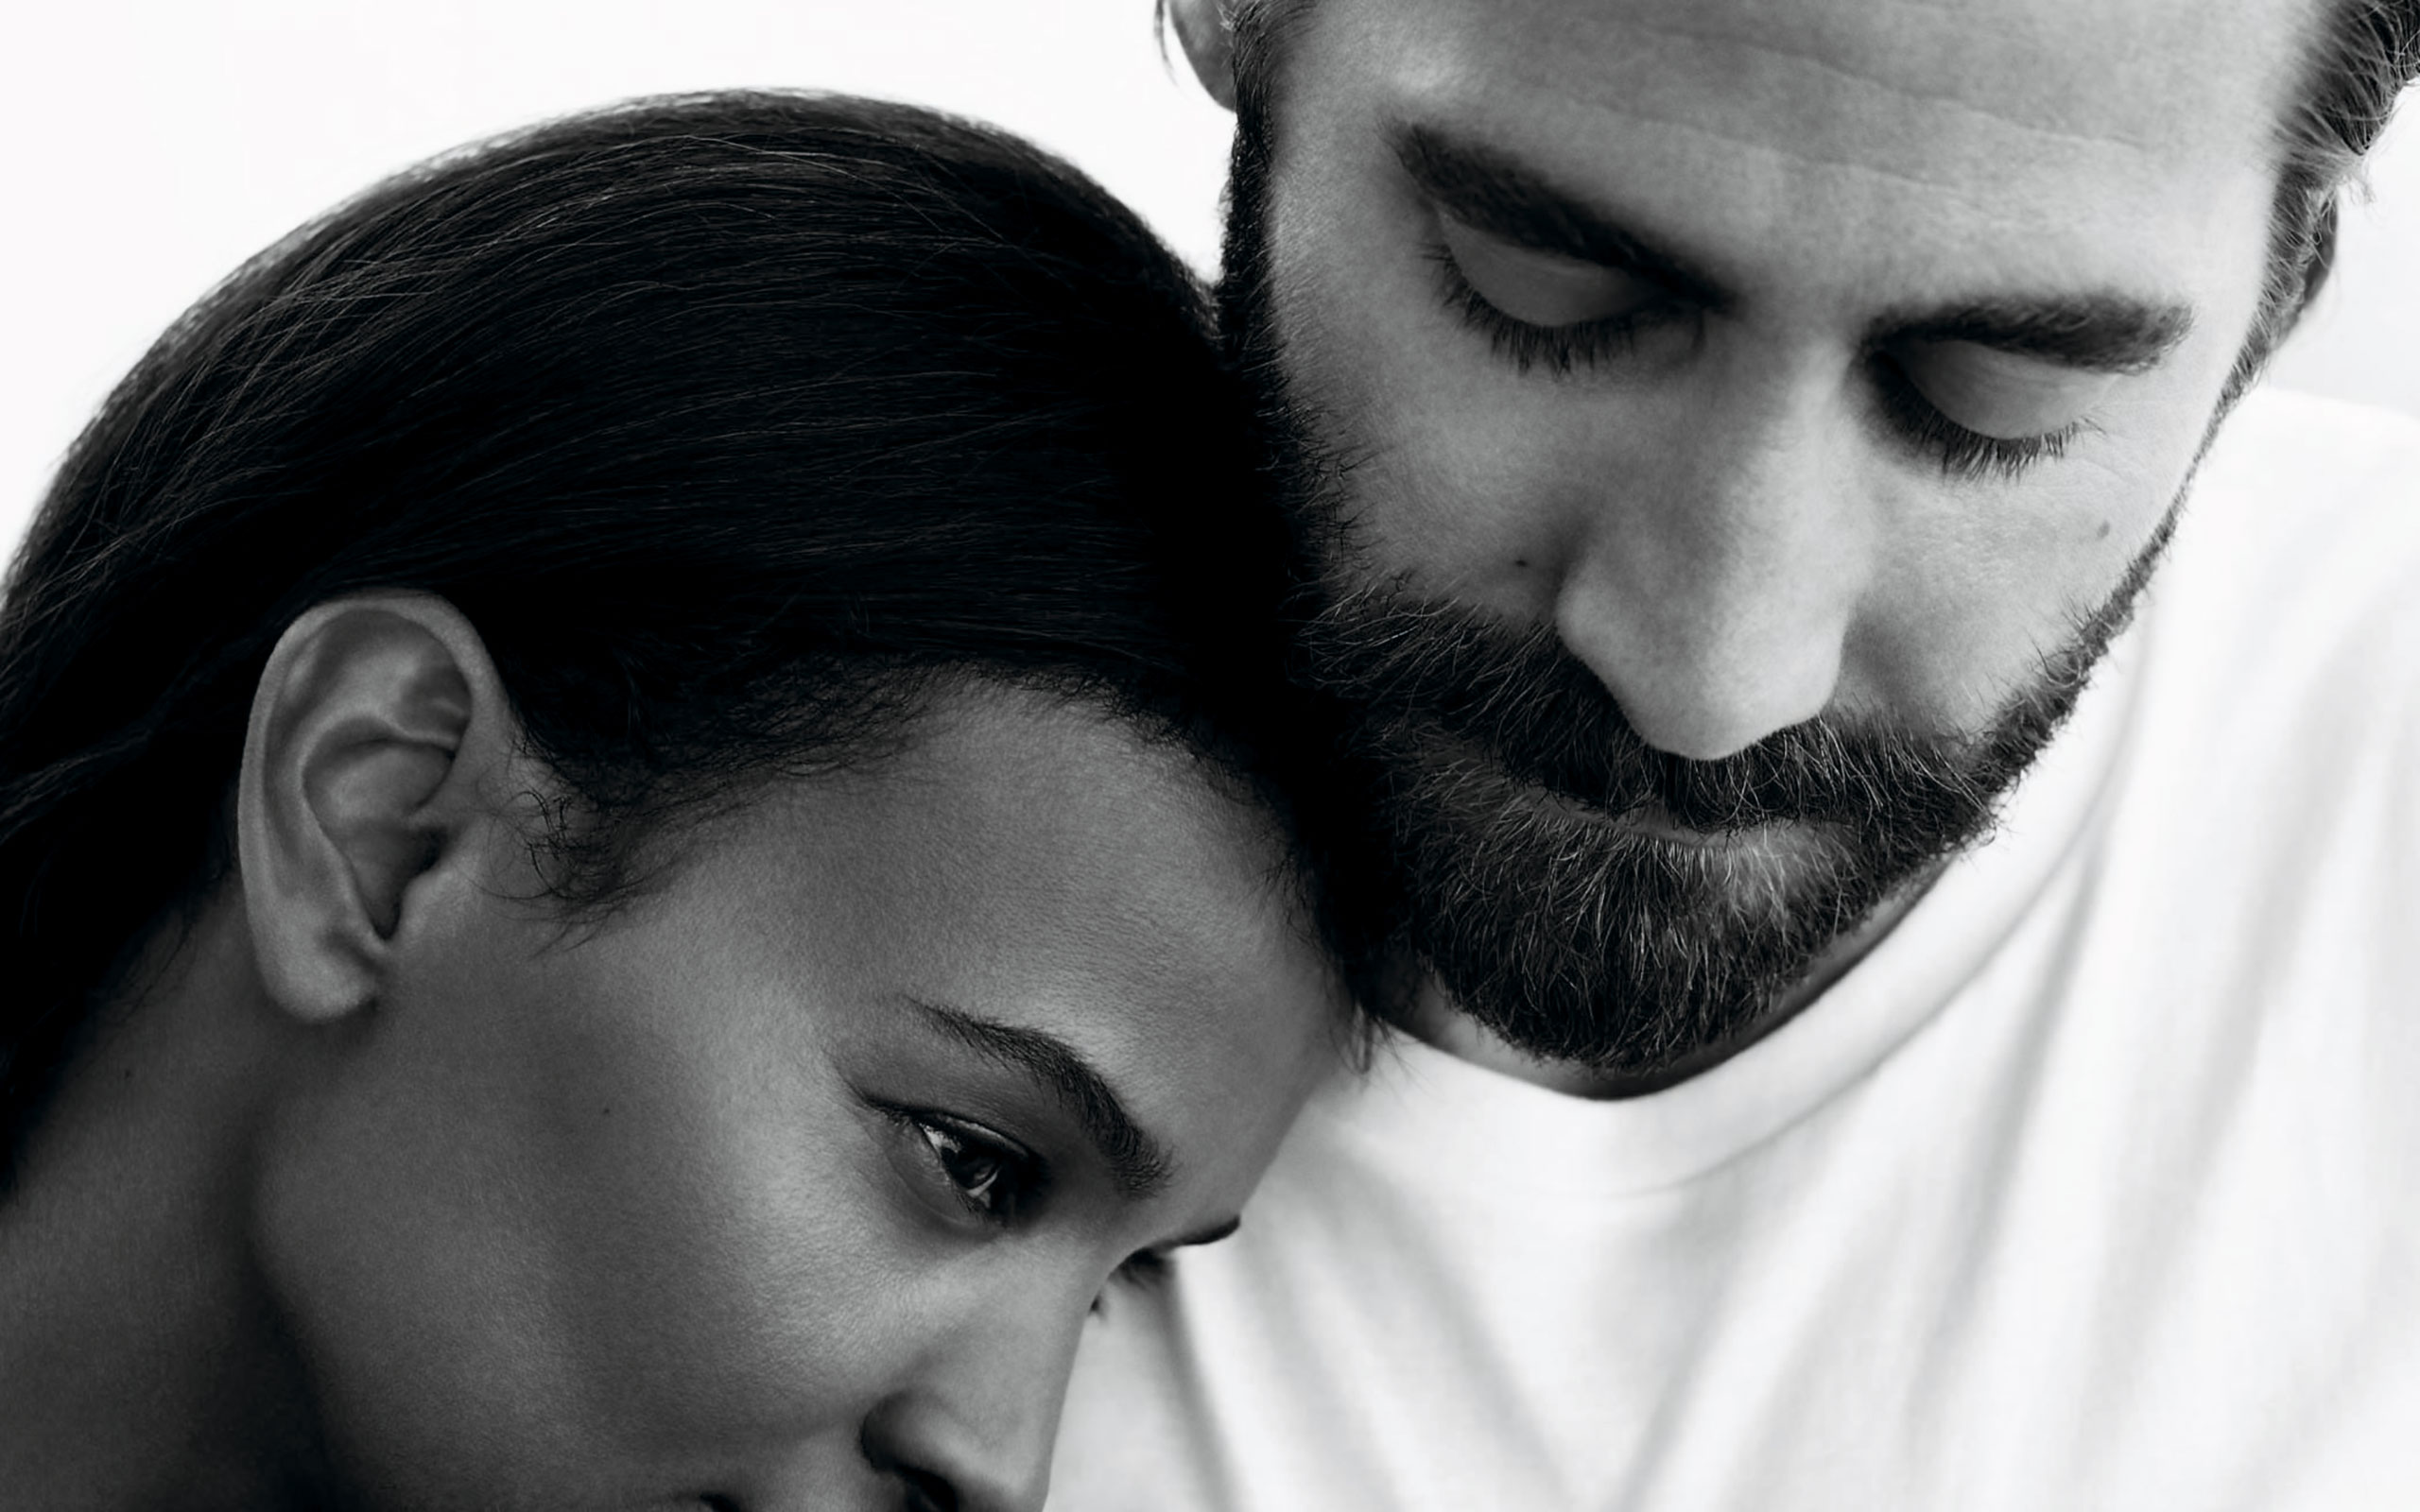 Calvin Klein Launches Fragrance Campaign Starring Jake Gyllenhaal